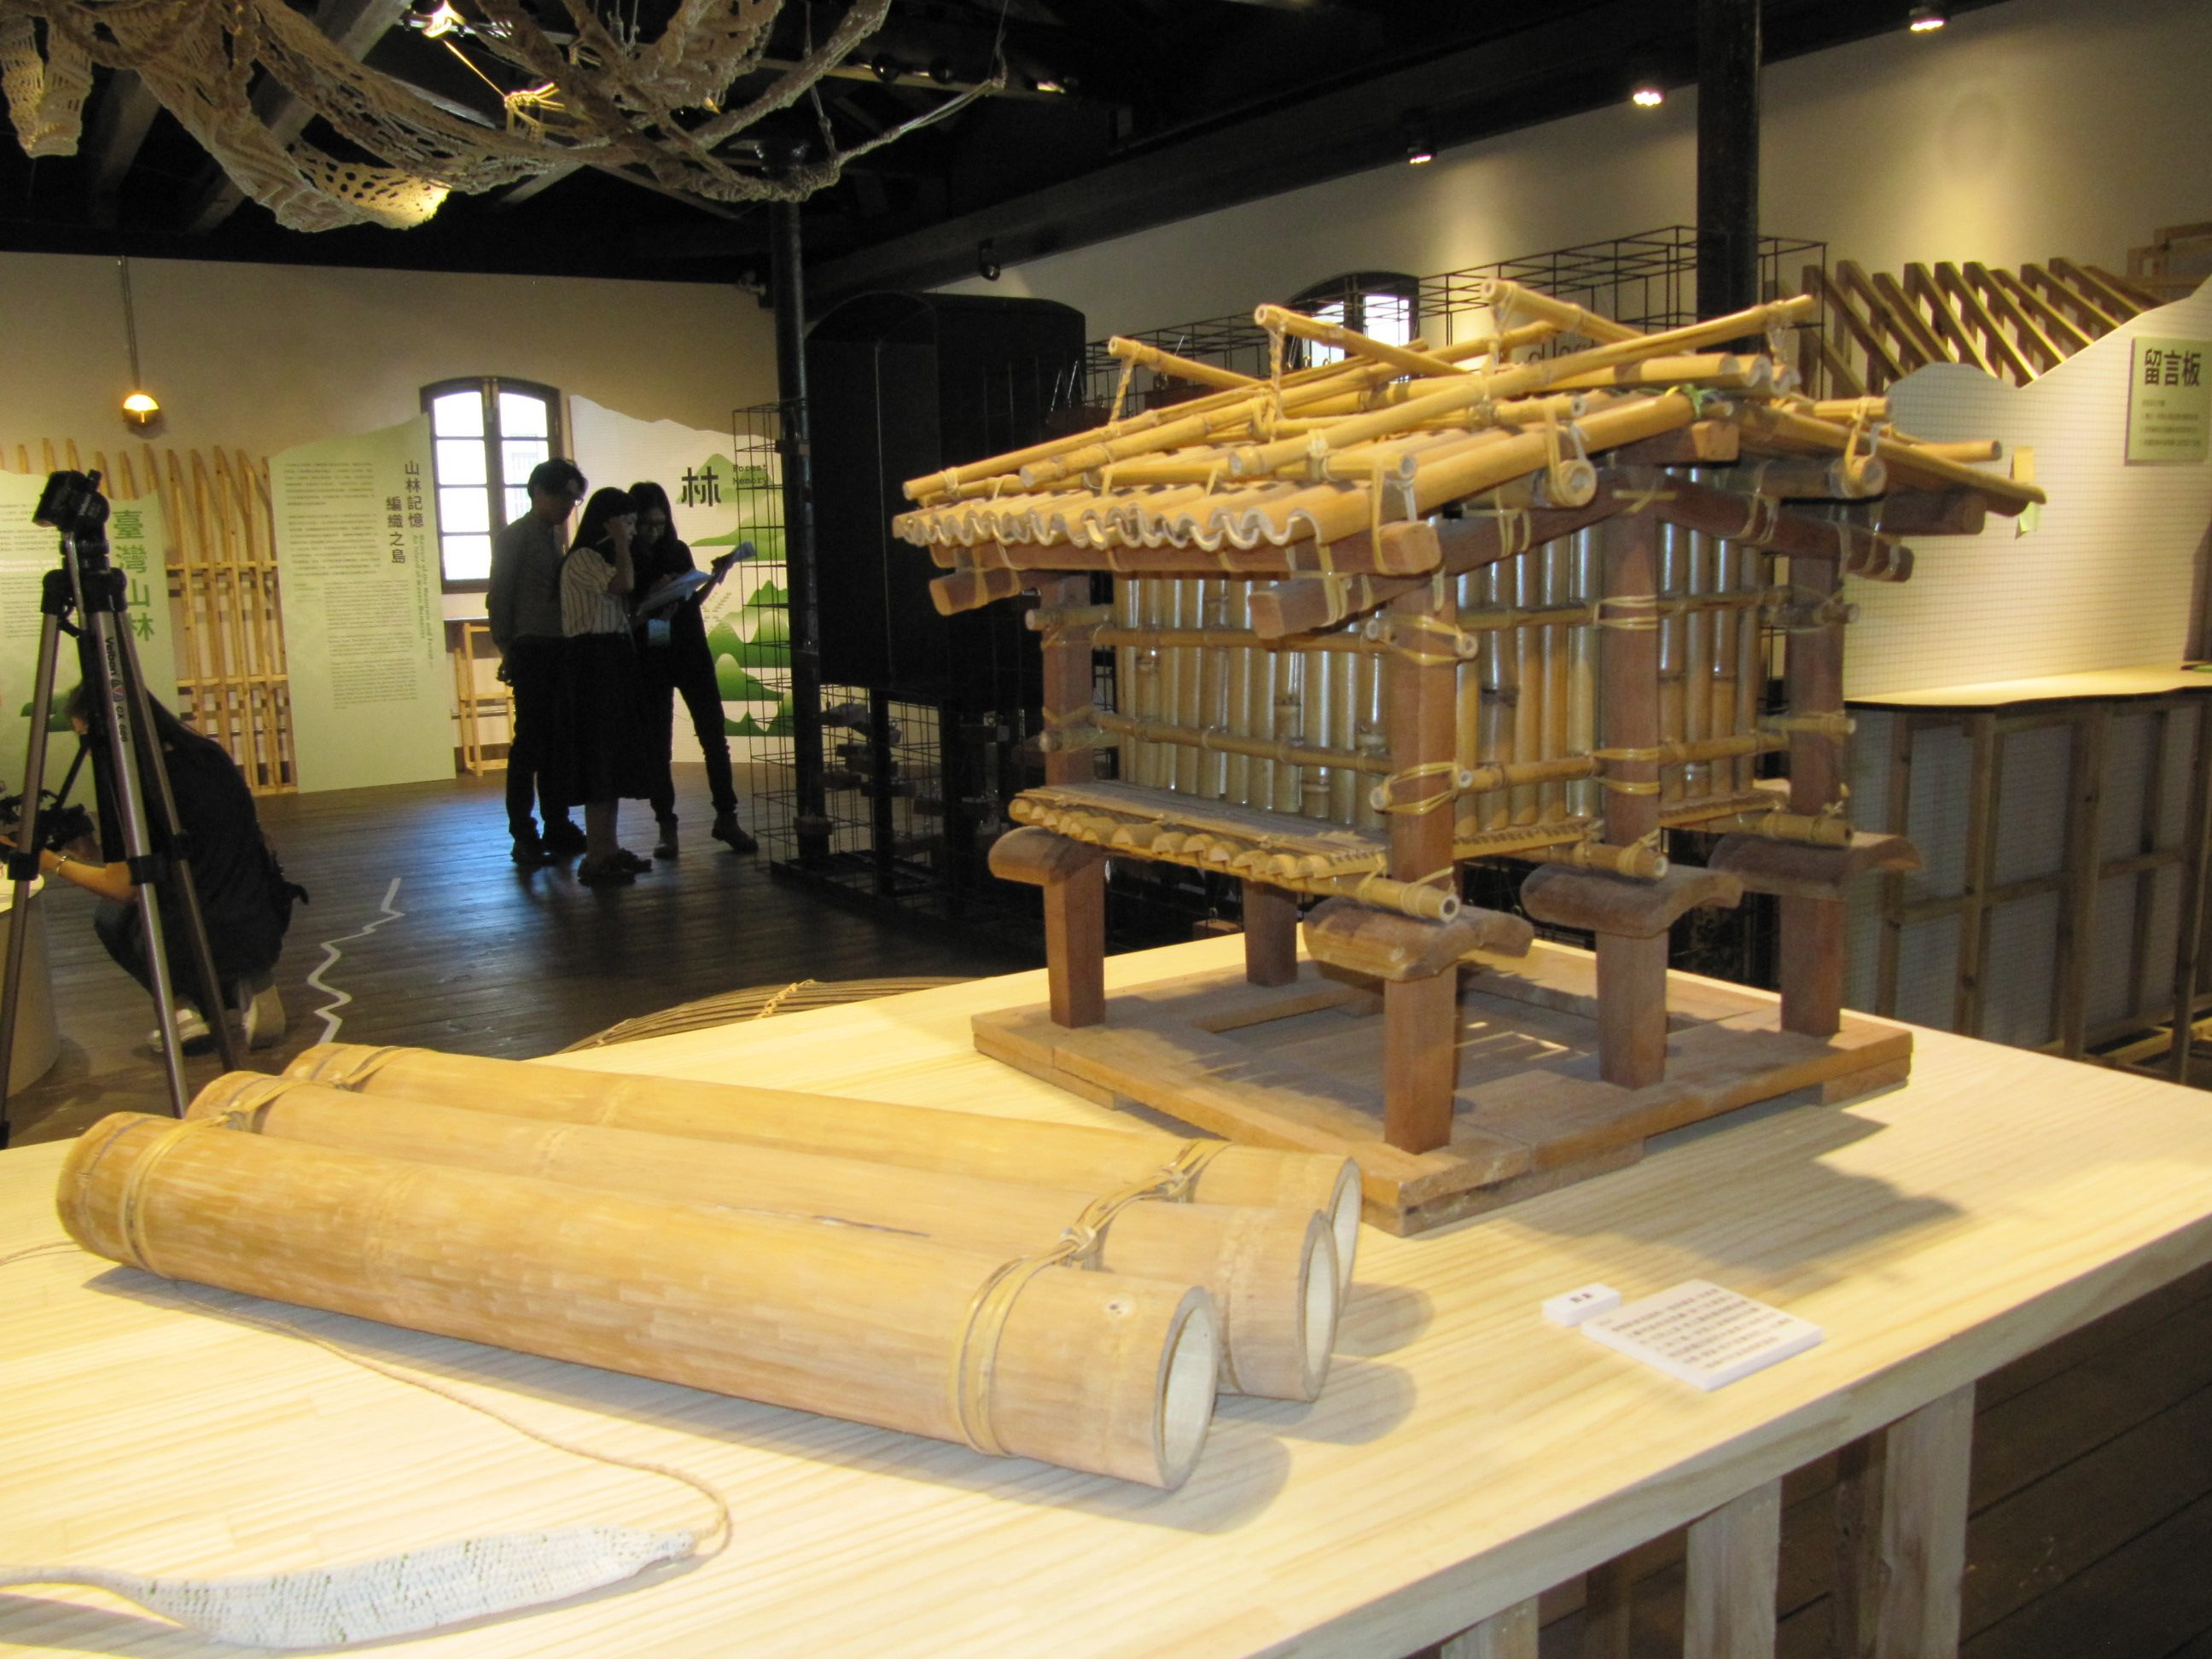 Viewers attend the exhibition at the historic Mitsui Warehouse